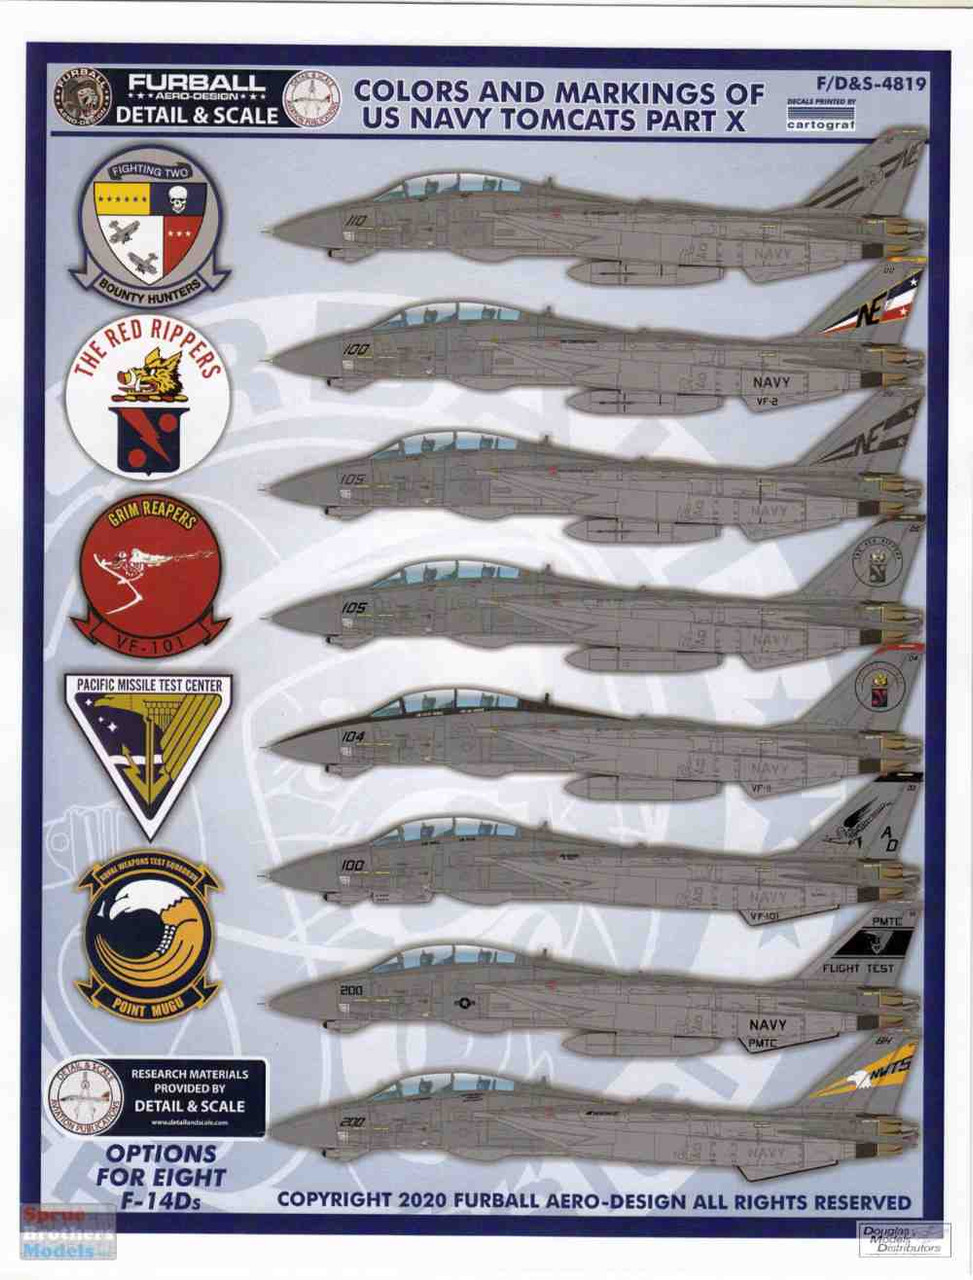 FURDS4819 1:48 Furball Aero Design F-14D Tomcat 'Colors and Markings of US Navy Tomcats' Part X